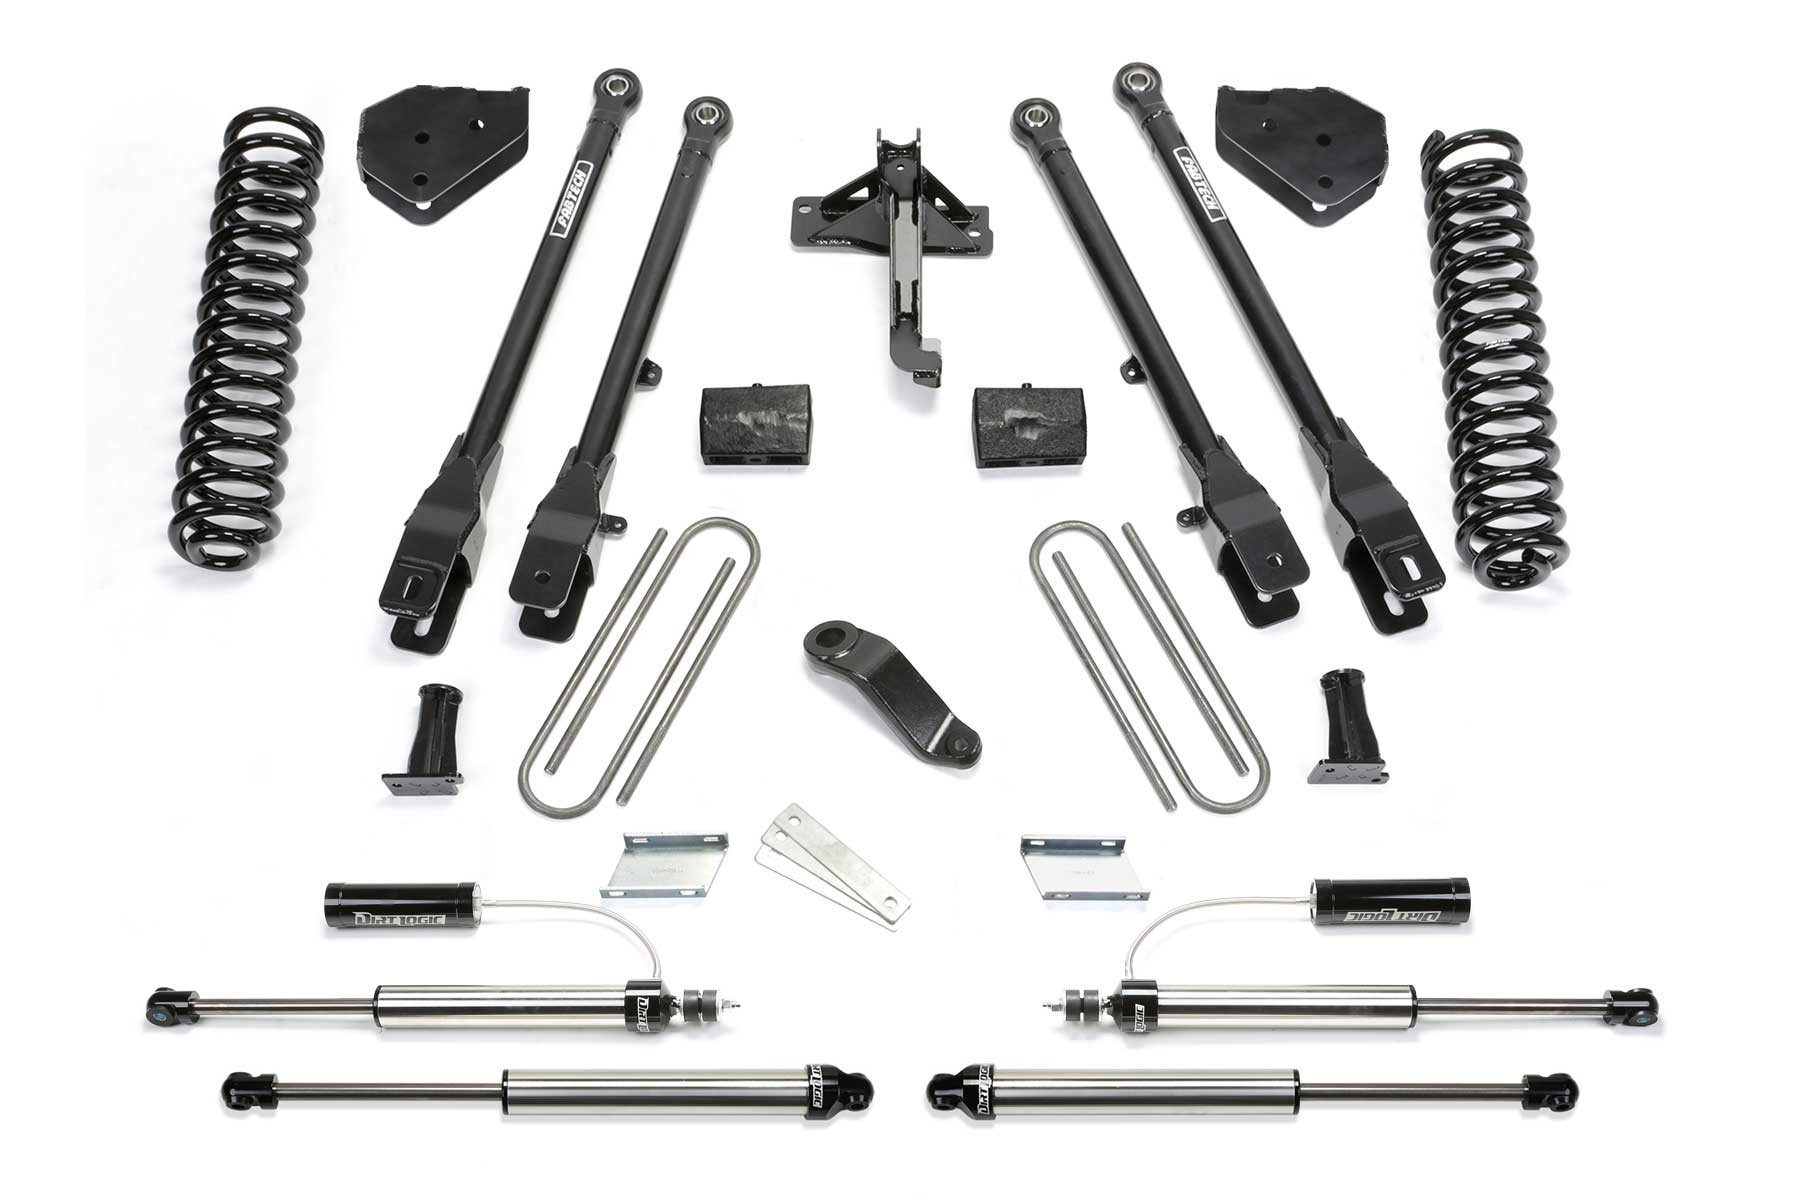 FABTECH 2017-18 FORD F250 / F350 4WD [6.2L GAS]- 4″ 4 LINK SYSTEM W/ FRONT DIRT LOGIC 2.25 RESI SHOCKS & REAR DIRT LOGIC SHOCKS